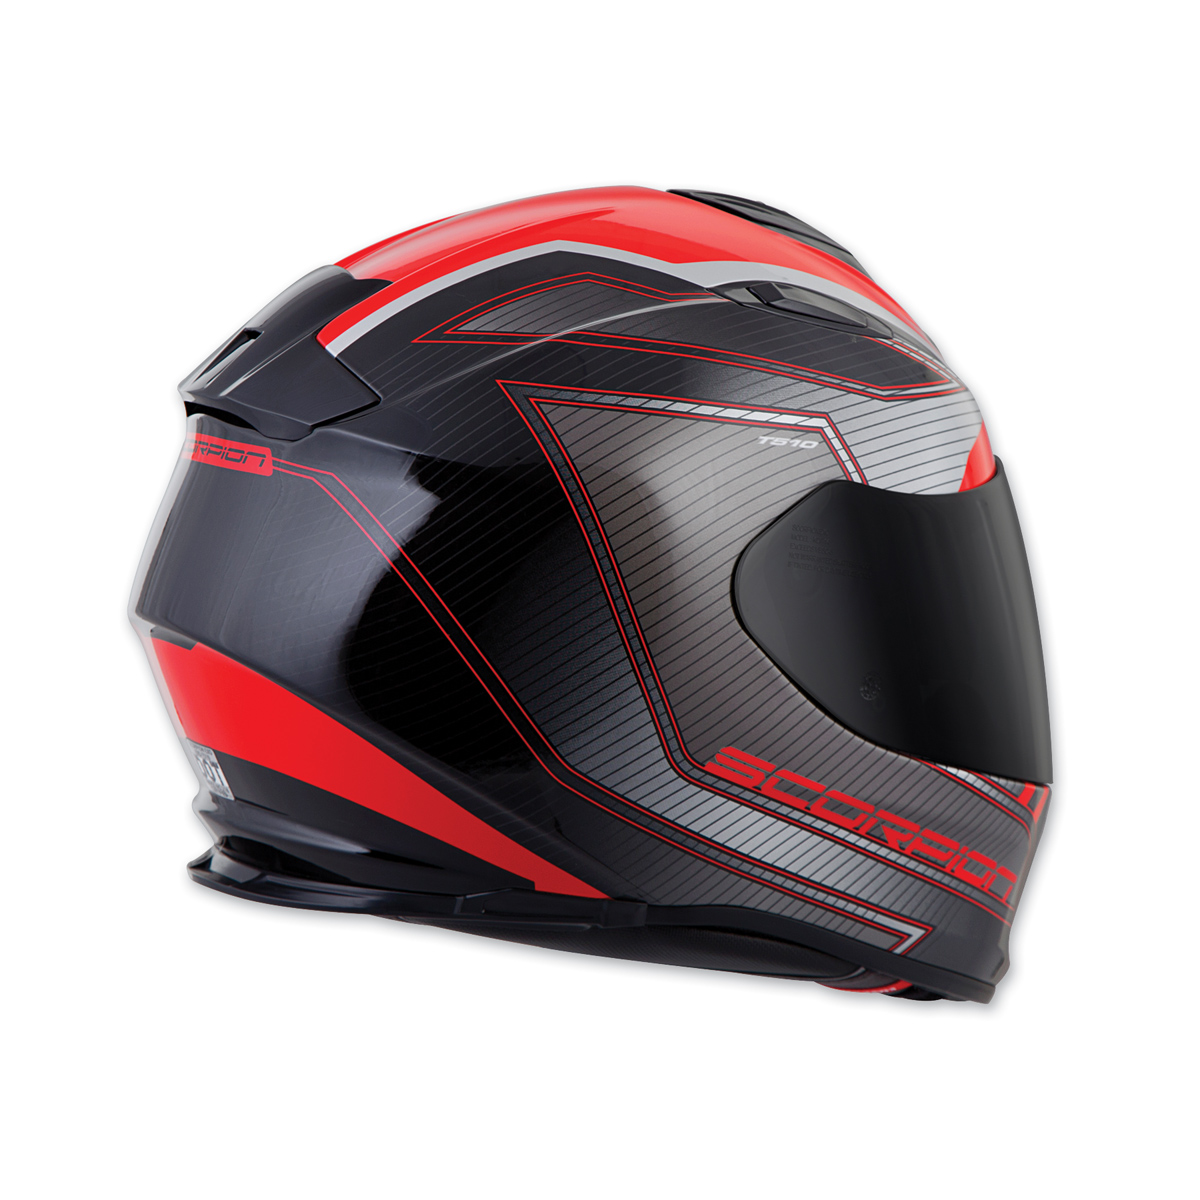 Whether youre off-roading, track racing, or work commuting, Cycle Gear has the motorcycle clothing and accessories that suit your passion. Get big discounts on helmets, jackets, boots, and gloves for you and the whole hog-riding family.